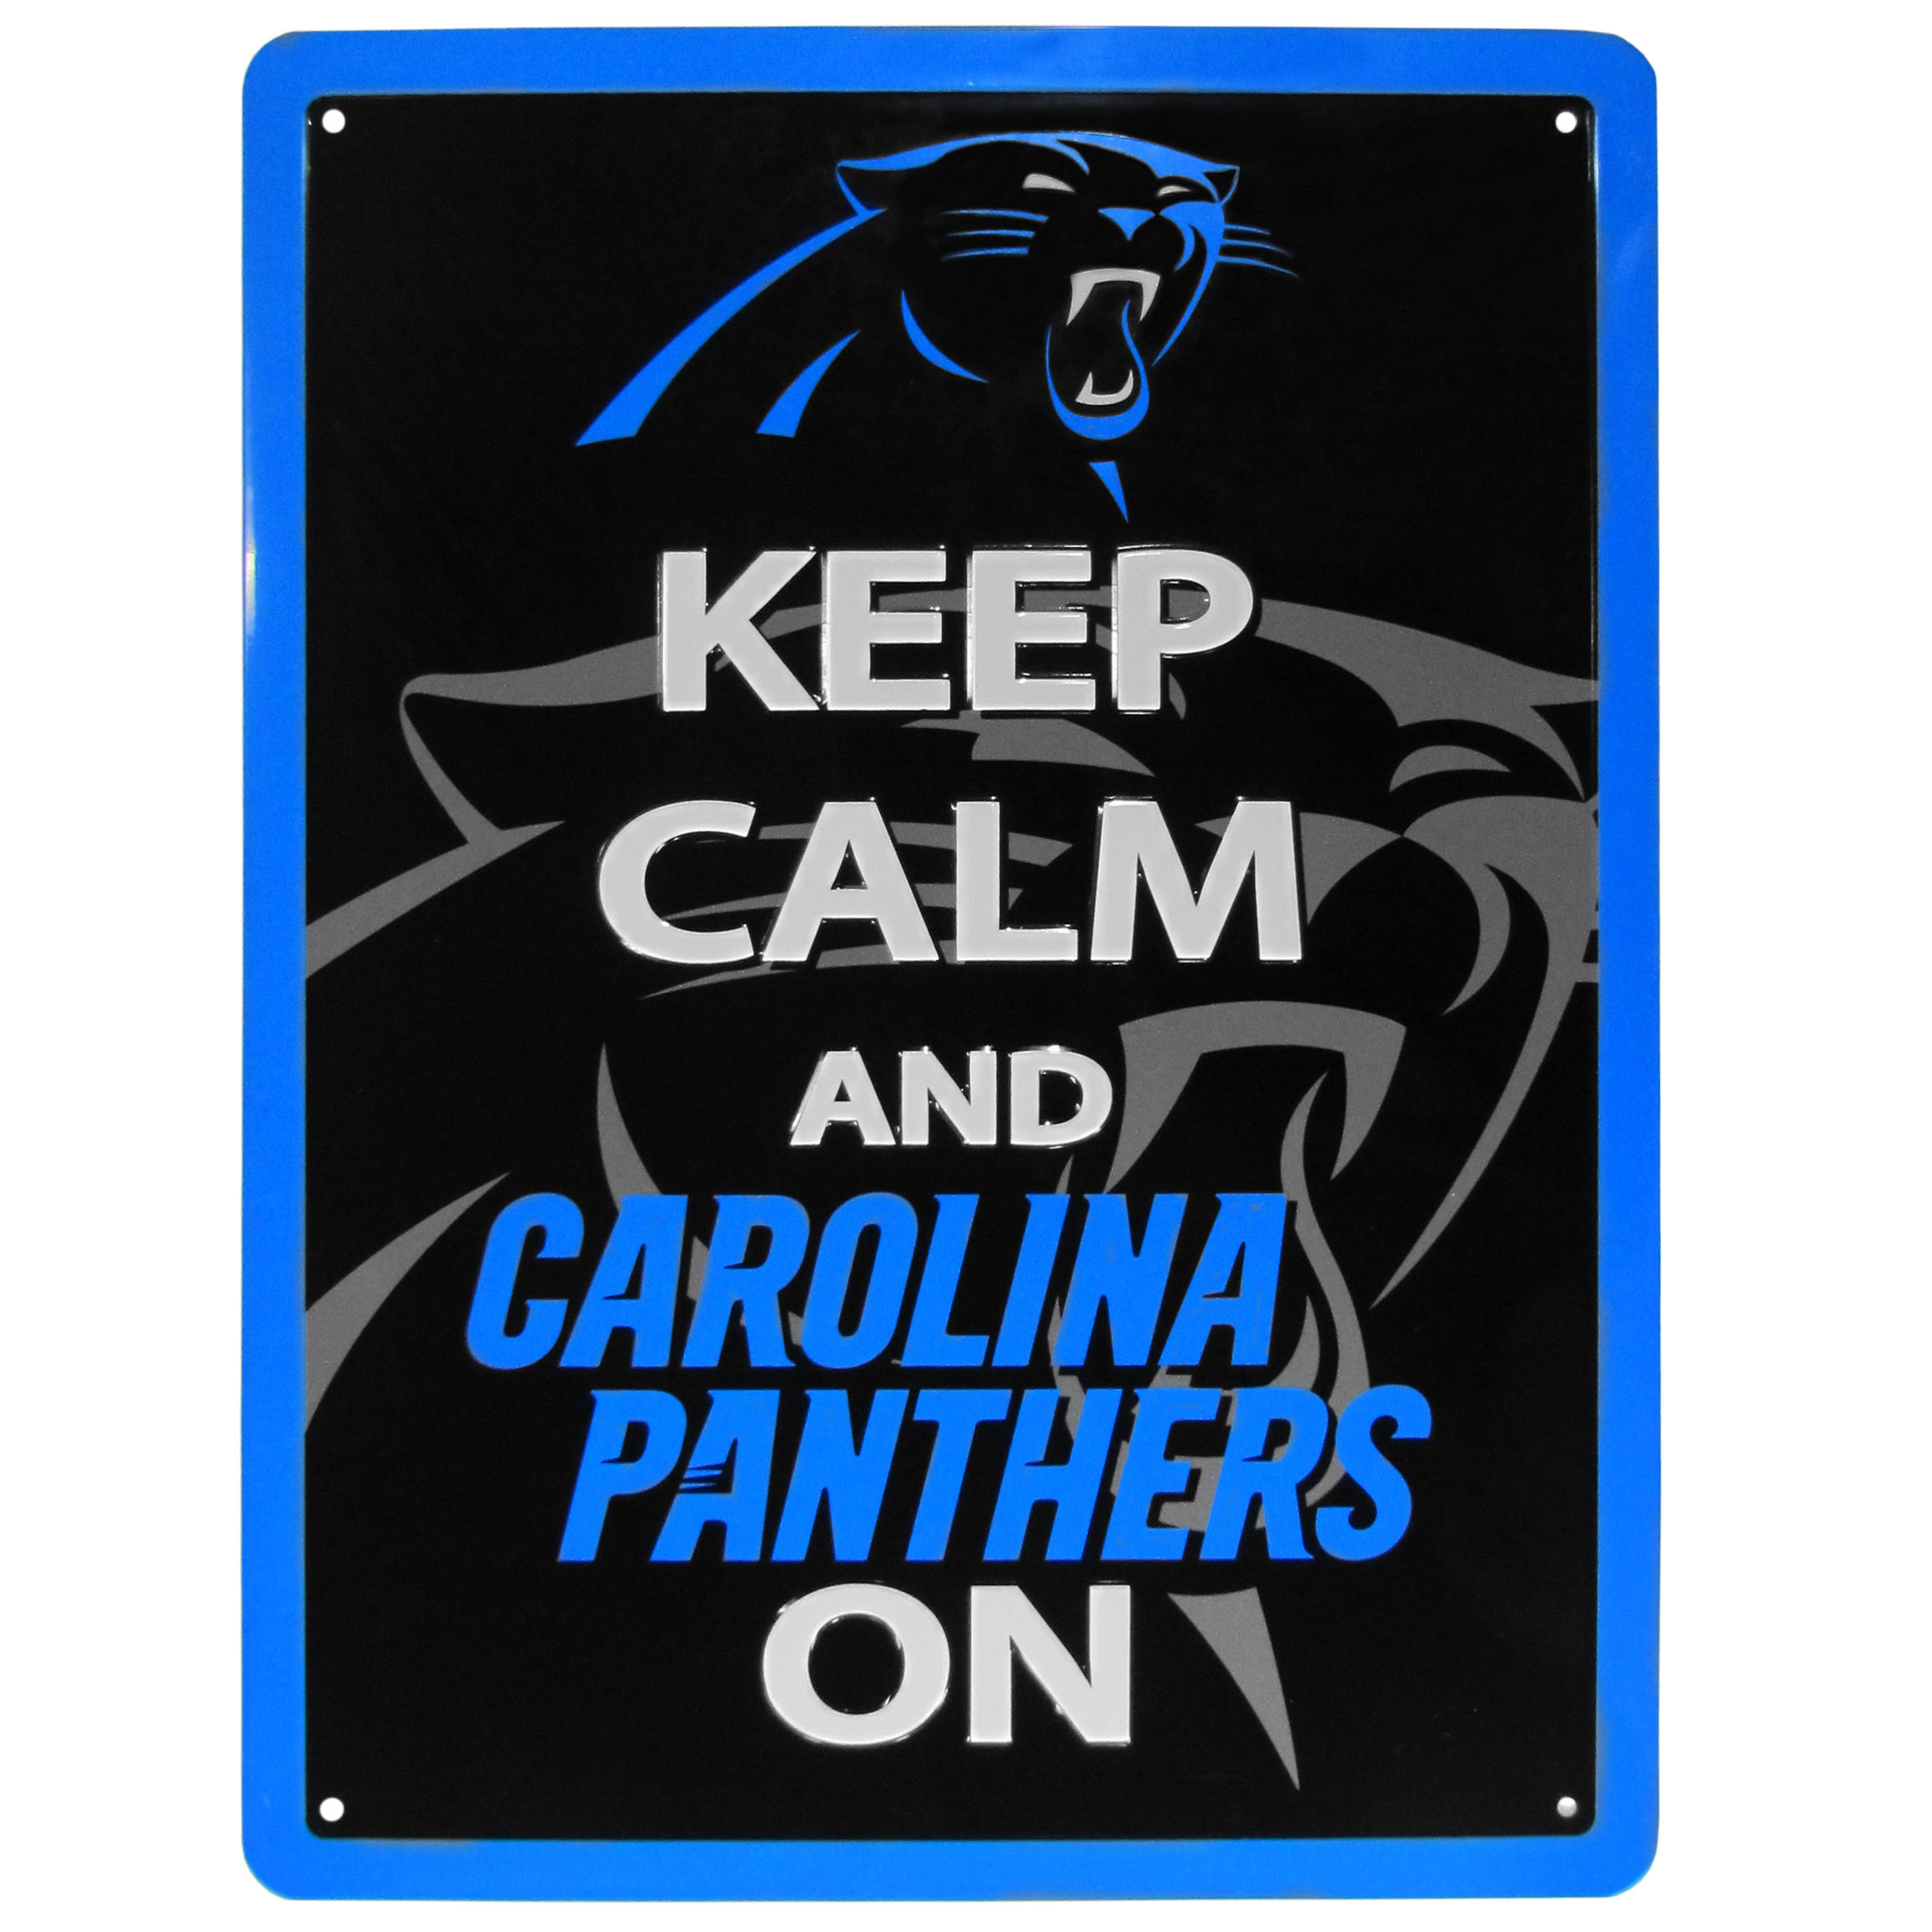 Carolina Panthers Keep Calm Sign - One of the most enduring motivational signs of all time is now available with your beloved Carolina Panthers logo. The 9 inch by 12 inch sign is a must have for any fan cave!